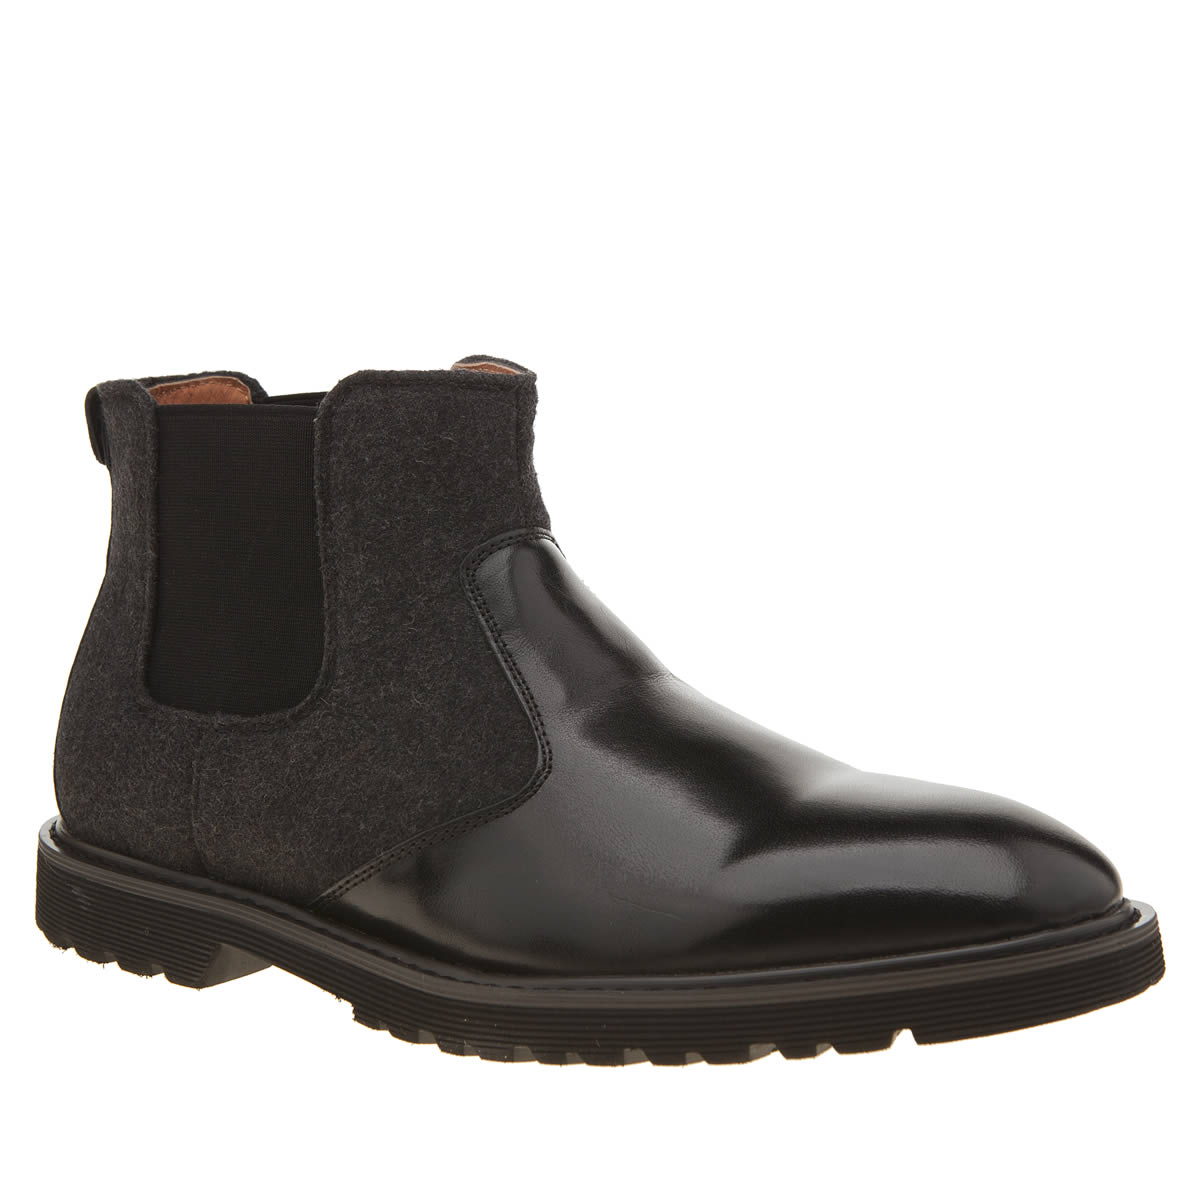 Peter Werth Peter Werth Black Laurie Chelsea Boots